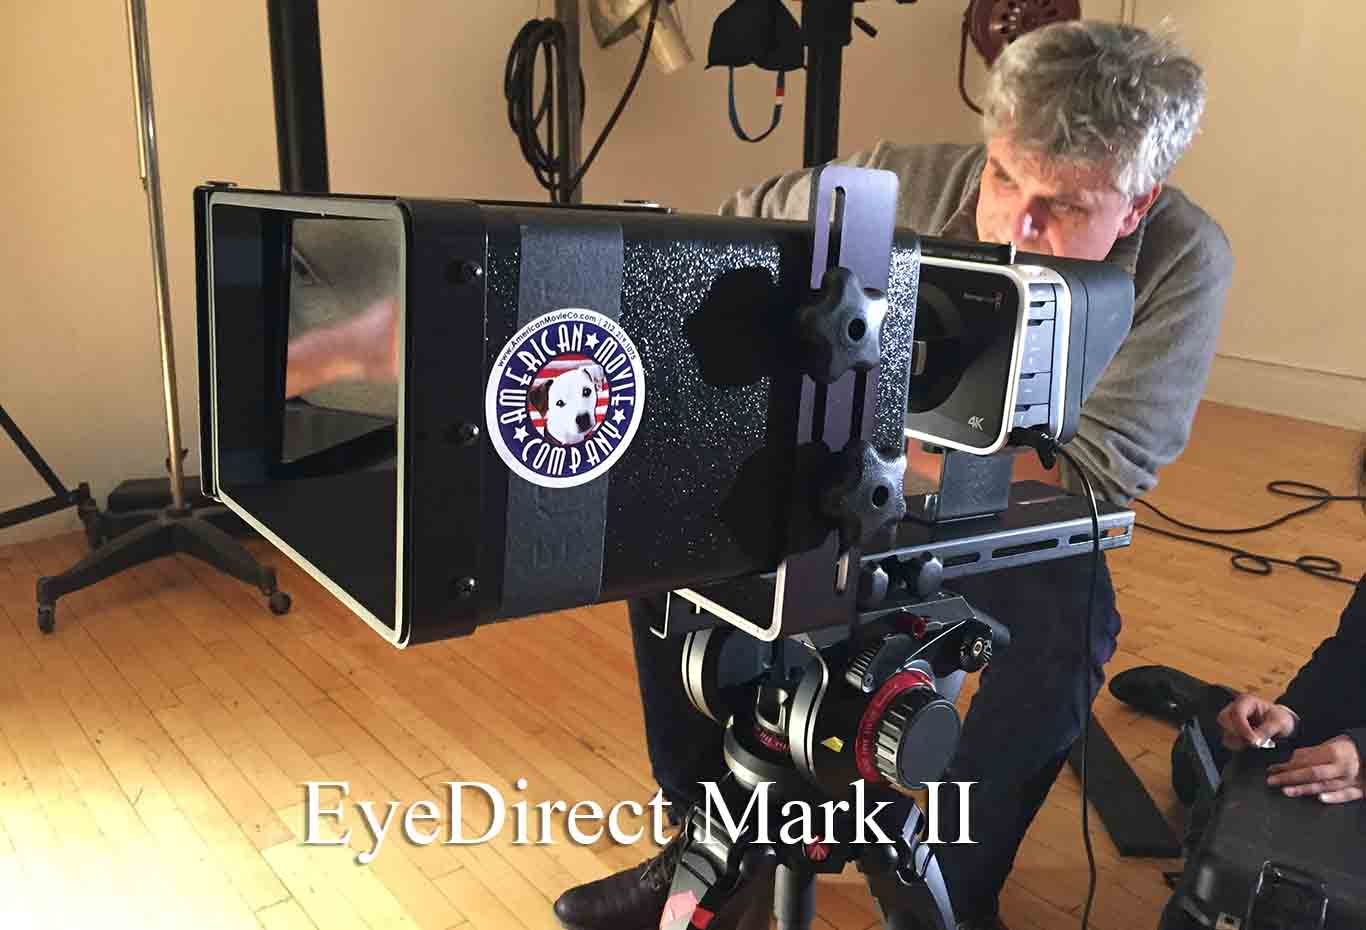 Cameraman with silver hair operating an EyeDirect Mark II with a Blackmagic 4K camera - eyedirect rental